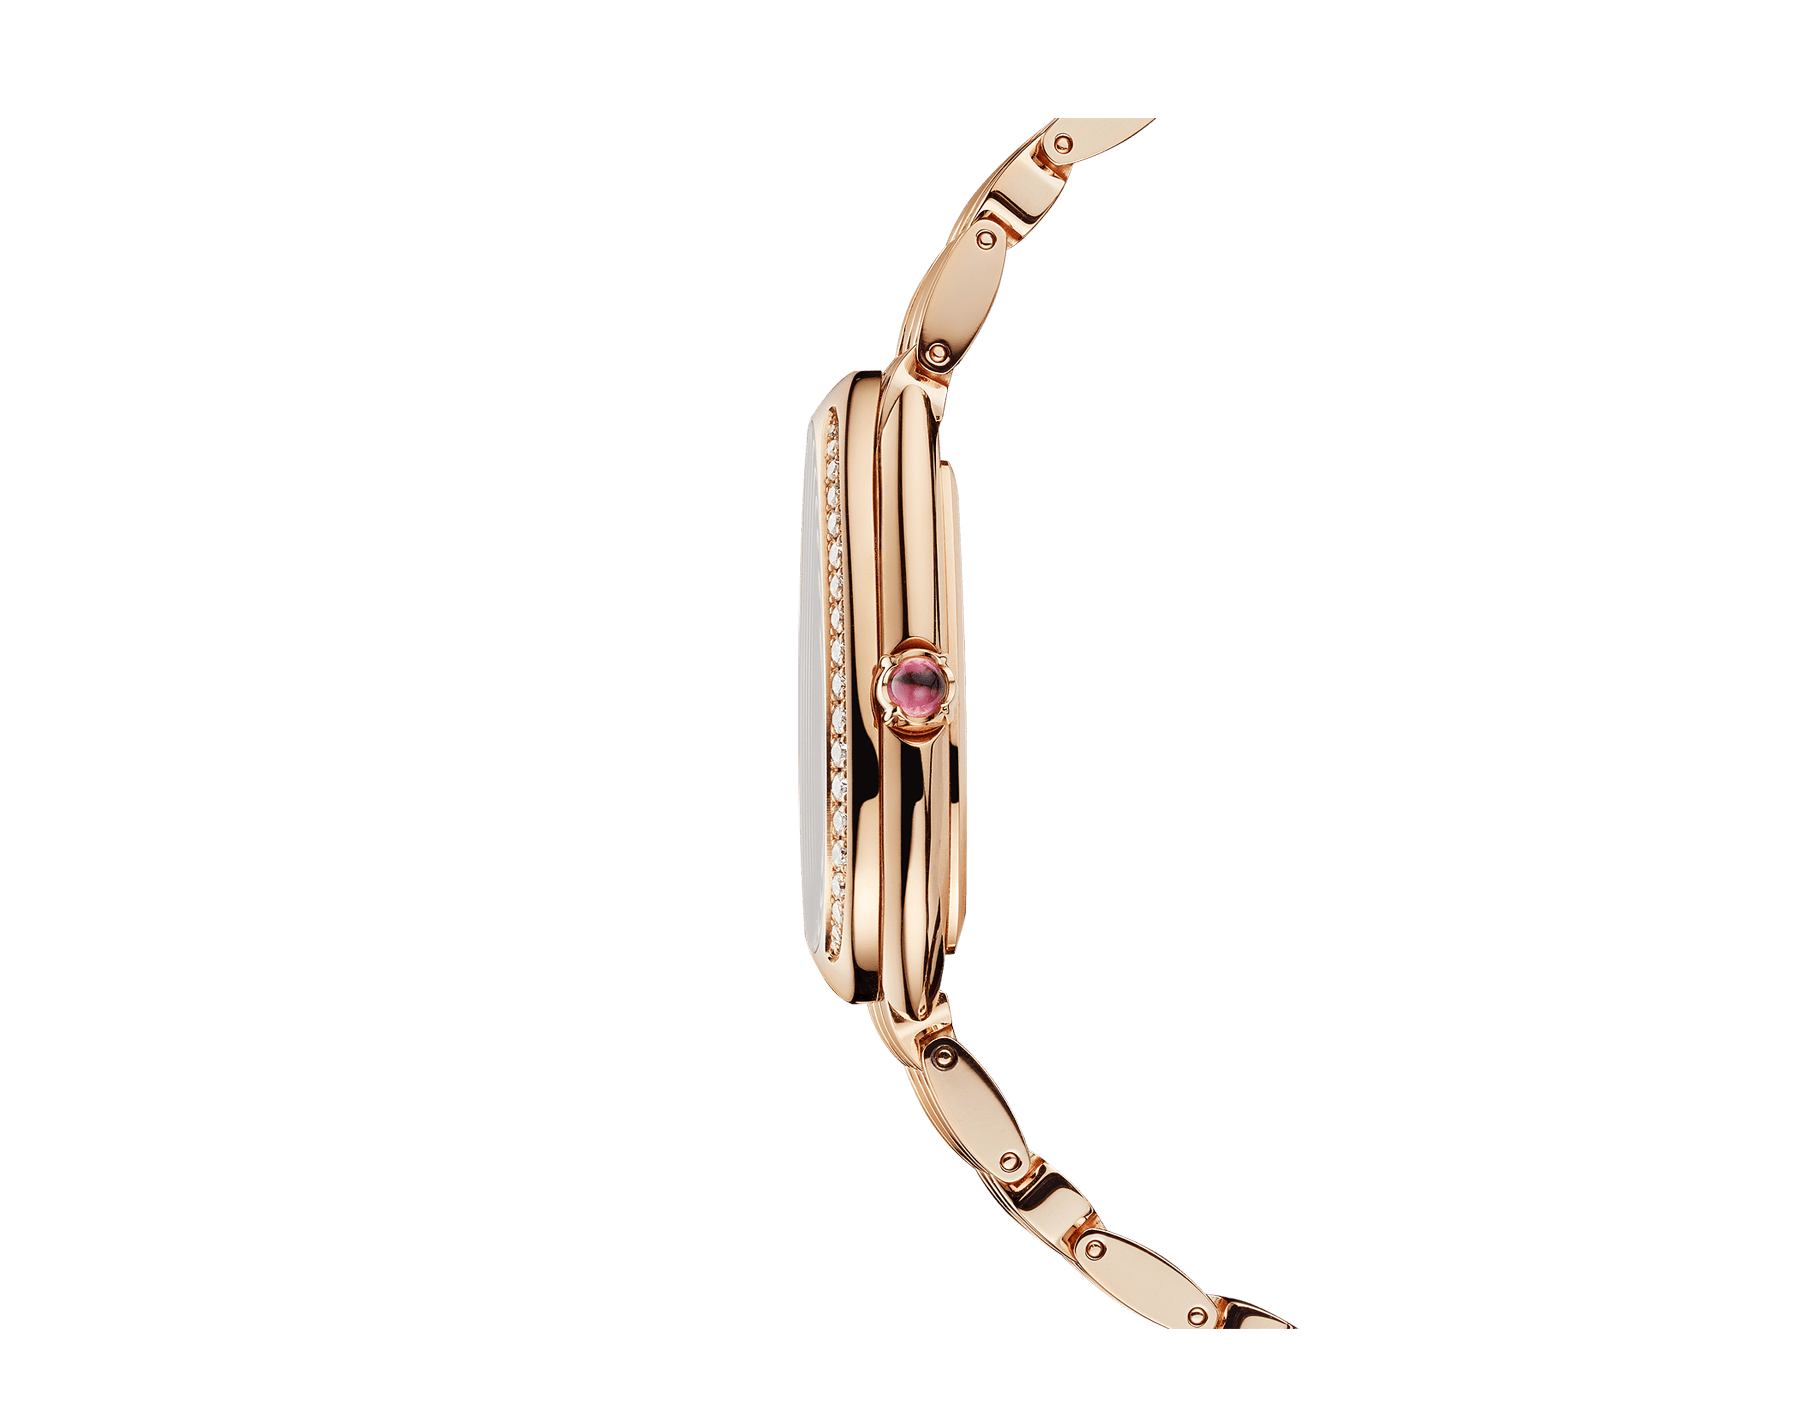 Serpenti Seduttori watch with 18 kt rose gold case, 18 kt rose gold bracelet, 18 kt rose gold bezel set with diamonds and a white silver opaline dial. 103146 image 3